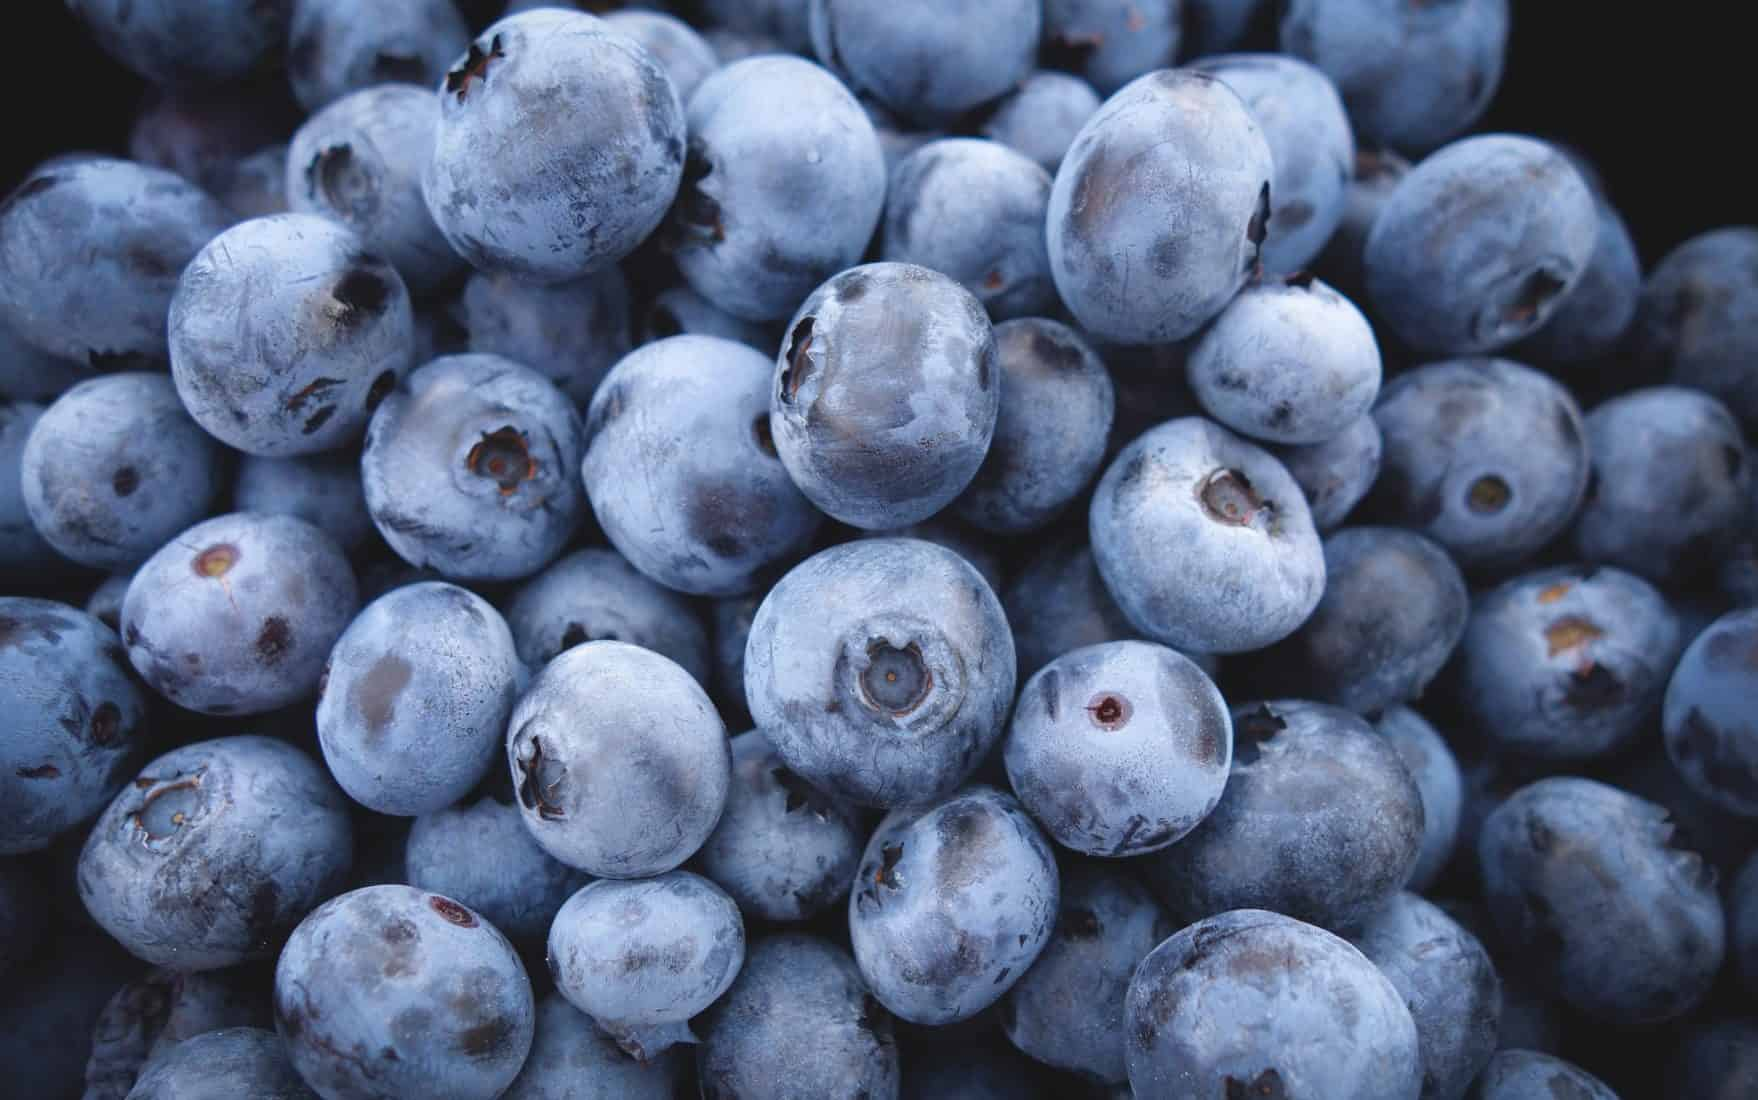 Dog owners should be cautious, as side effects may occurs from dogs eating blueberries.